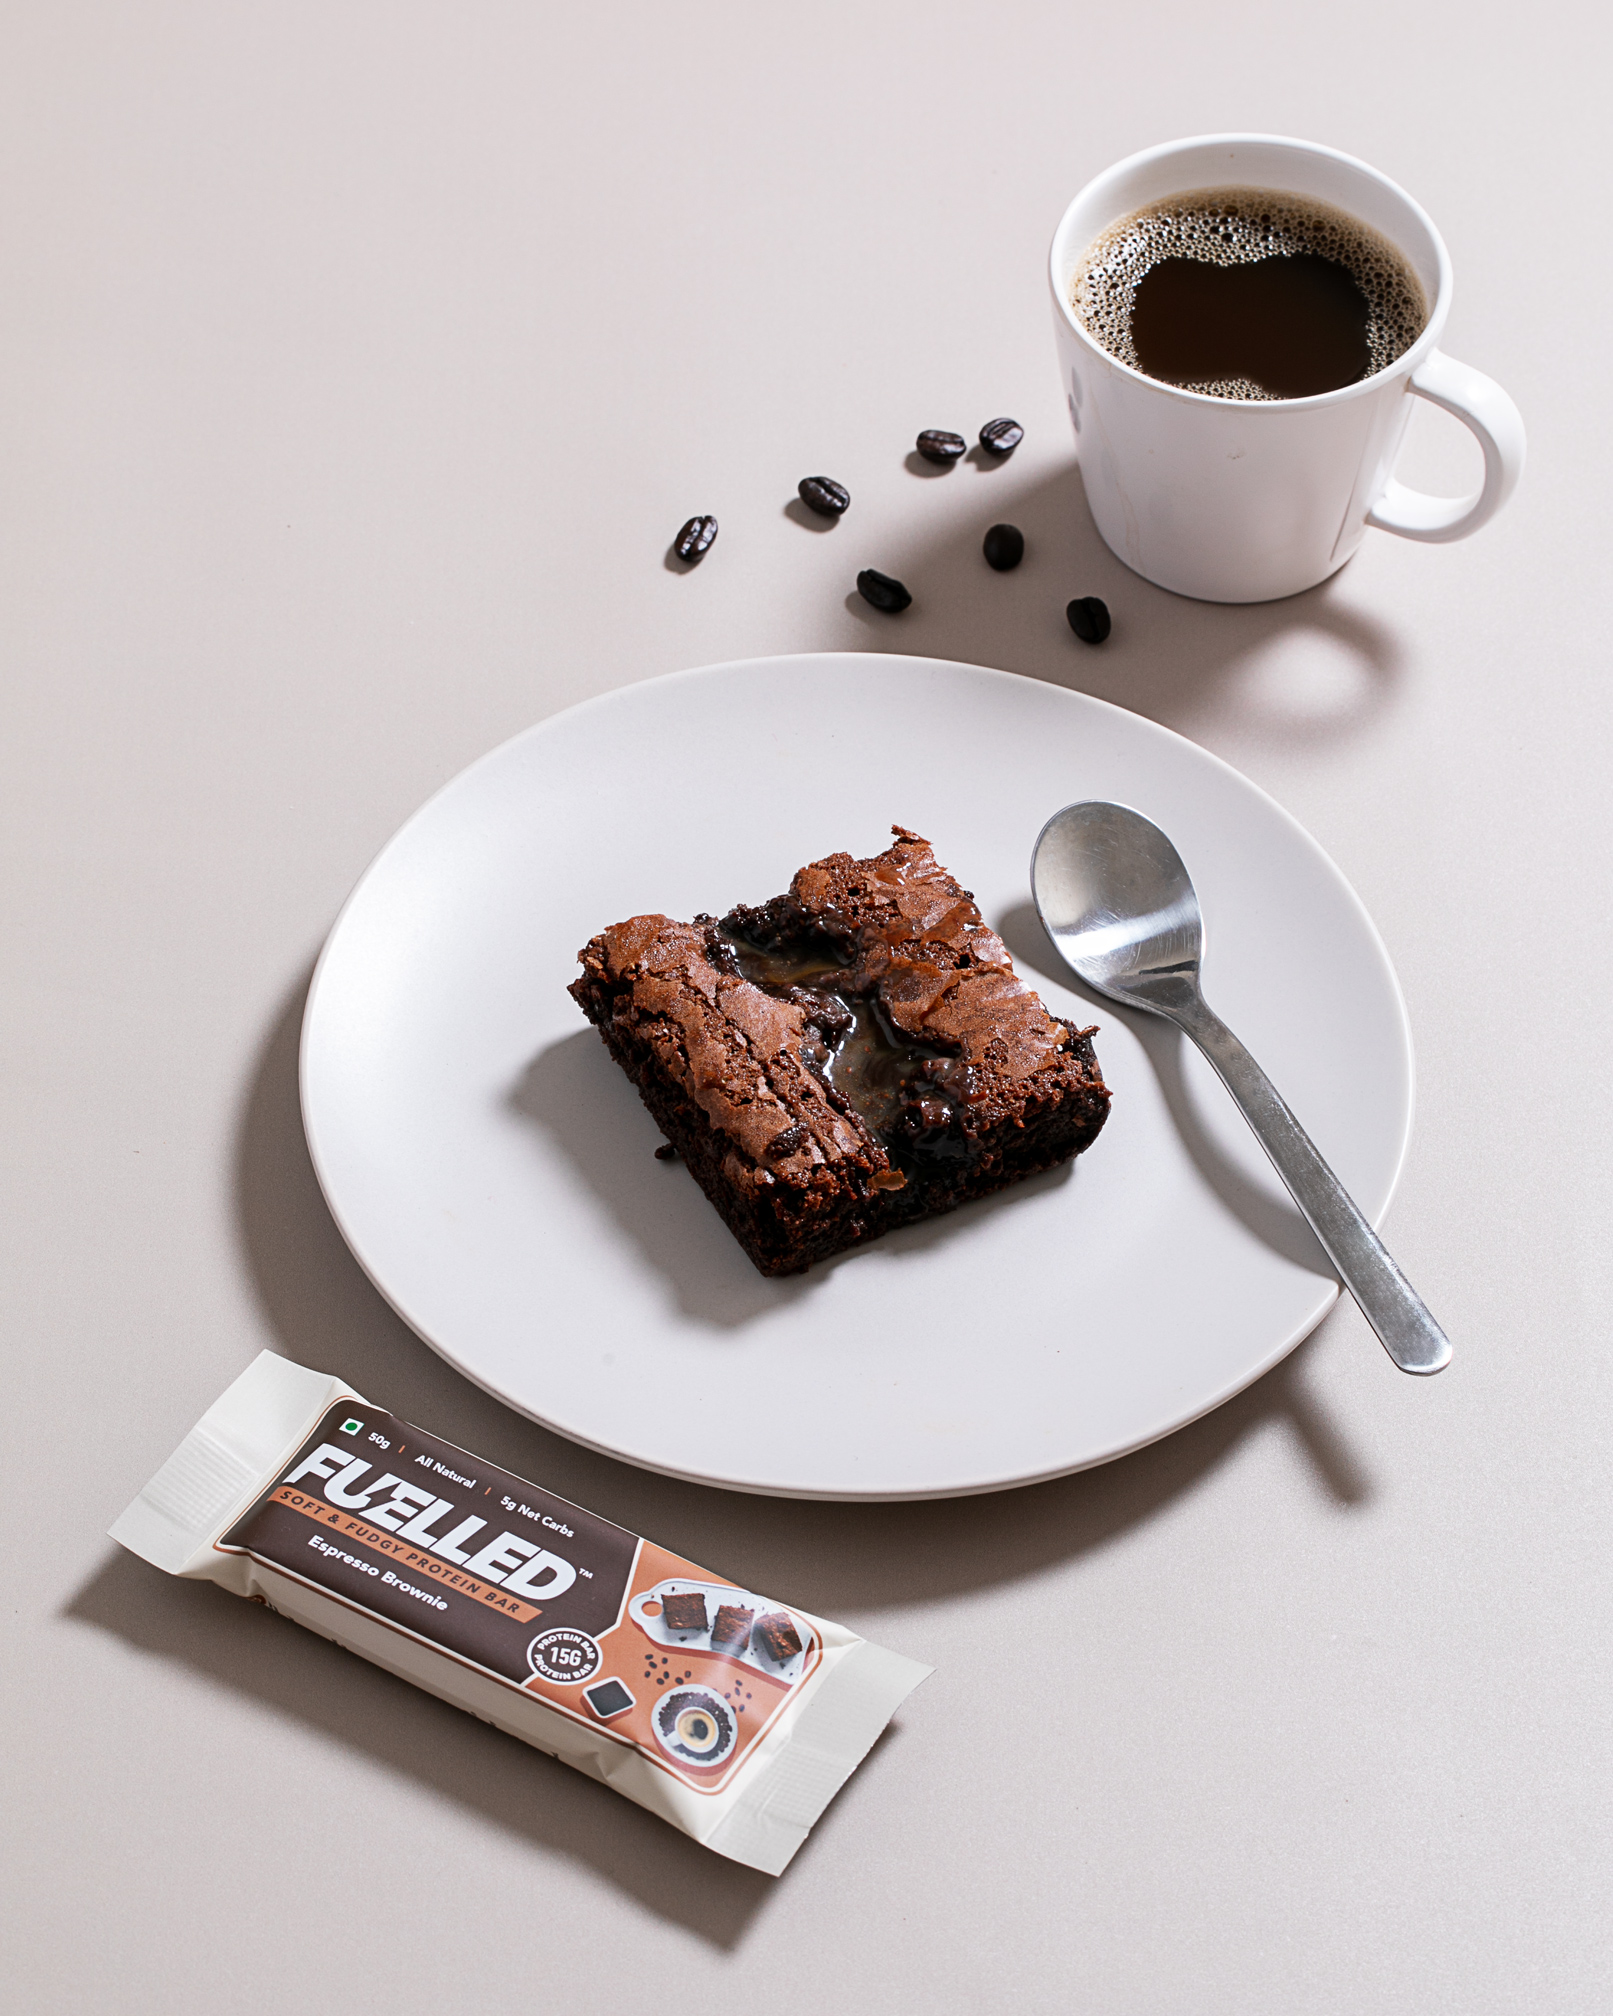 Fuelled Espresso Brownie Protein Bar Kept With a Brownie and an Espresso Shot